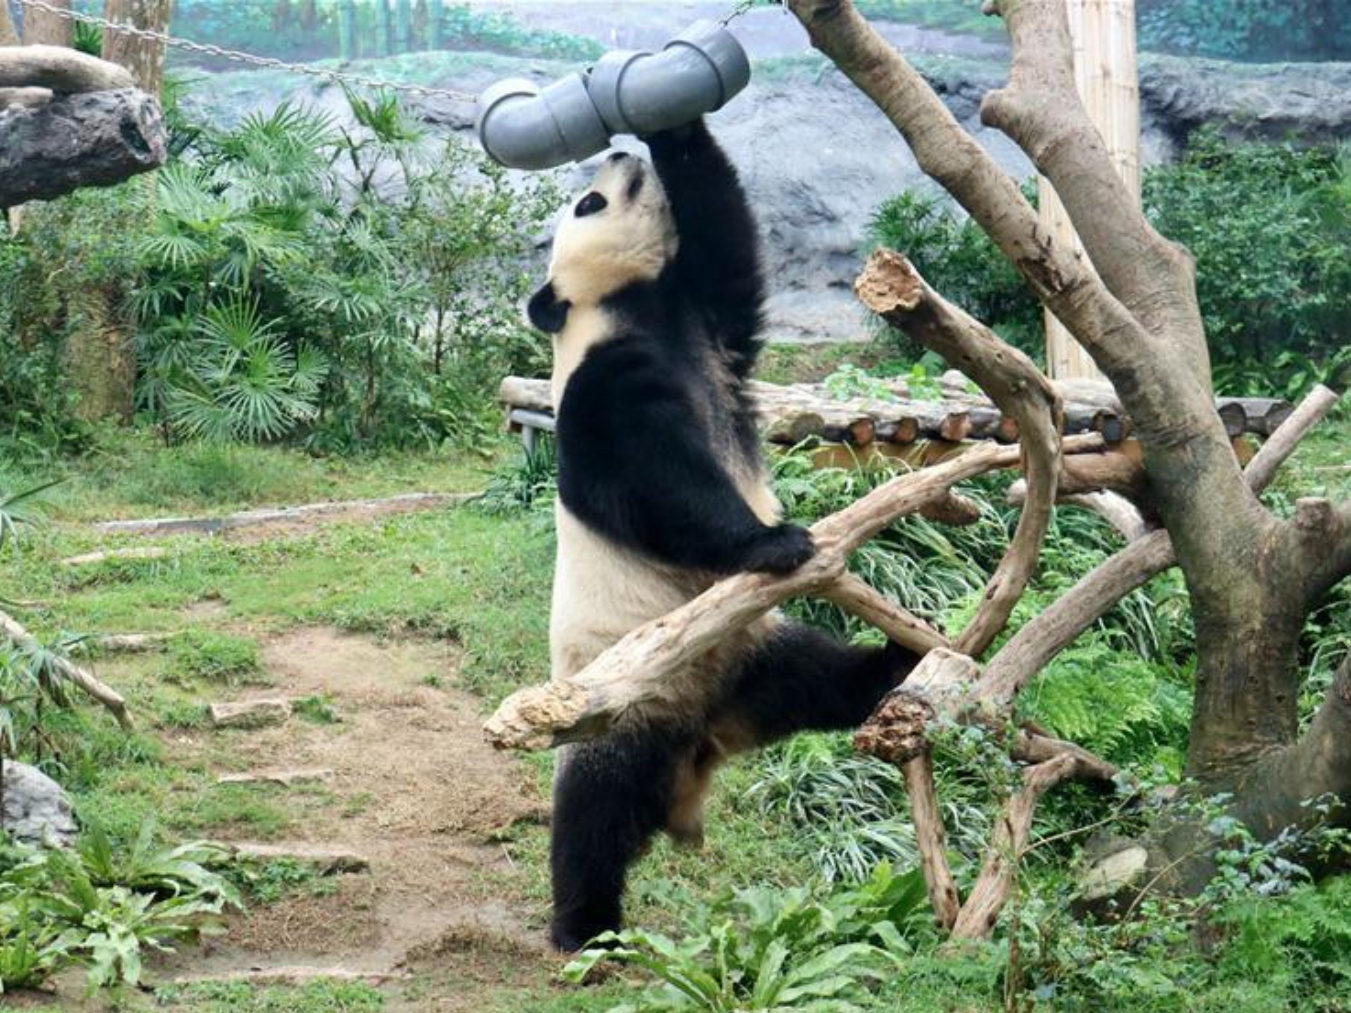 Giant pandas celebrate their fourth birthday in Macao